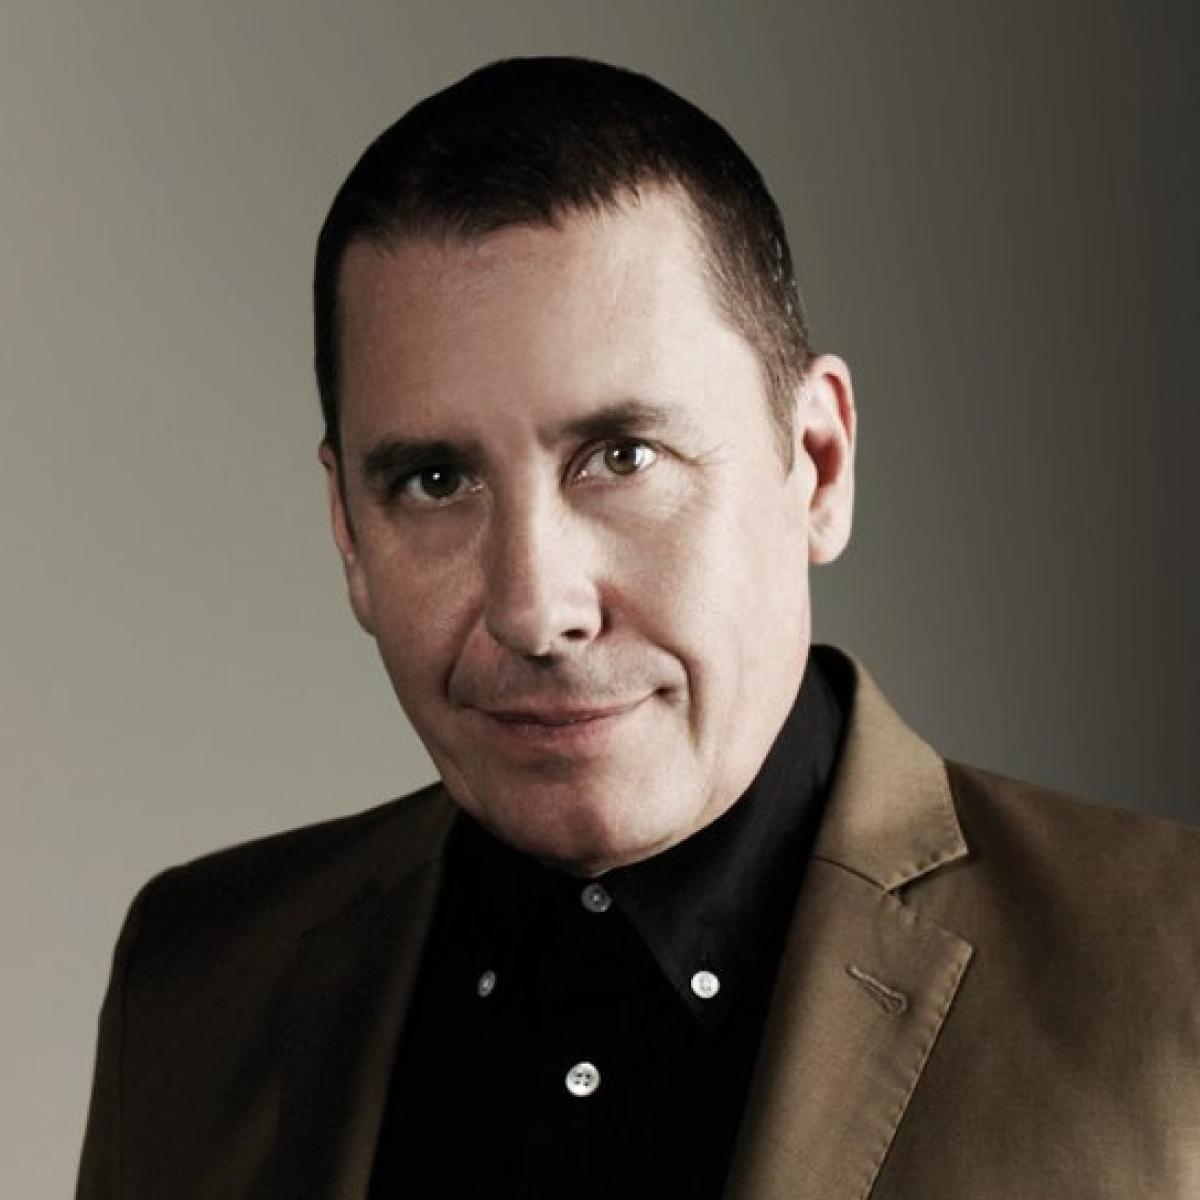 Jools Holland OBE